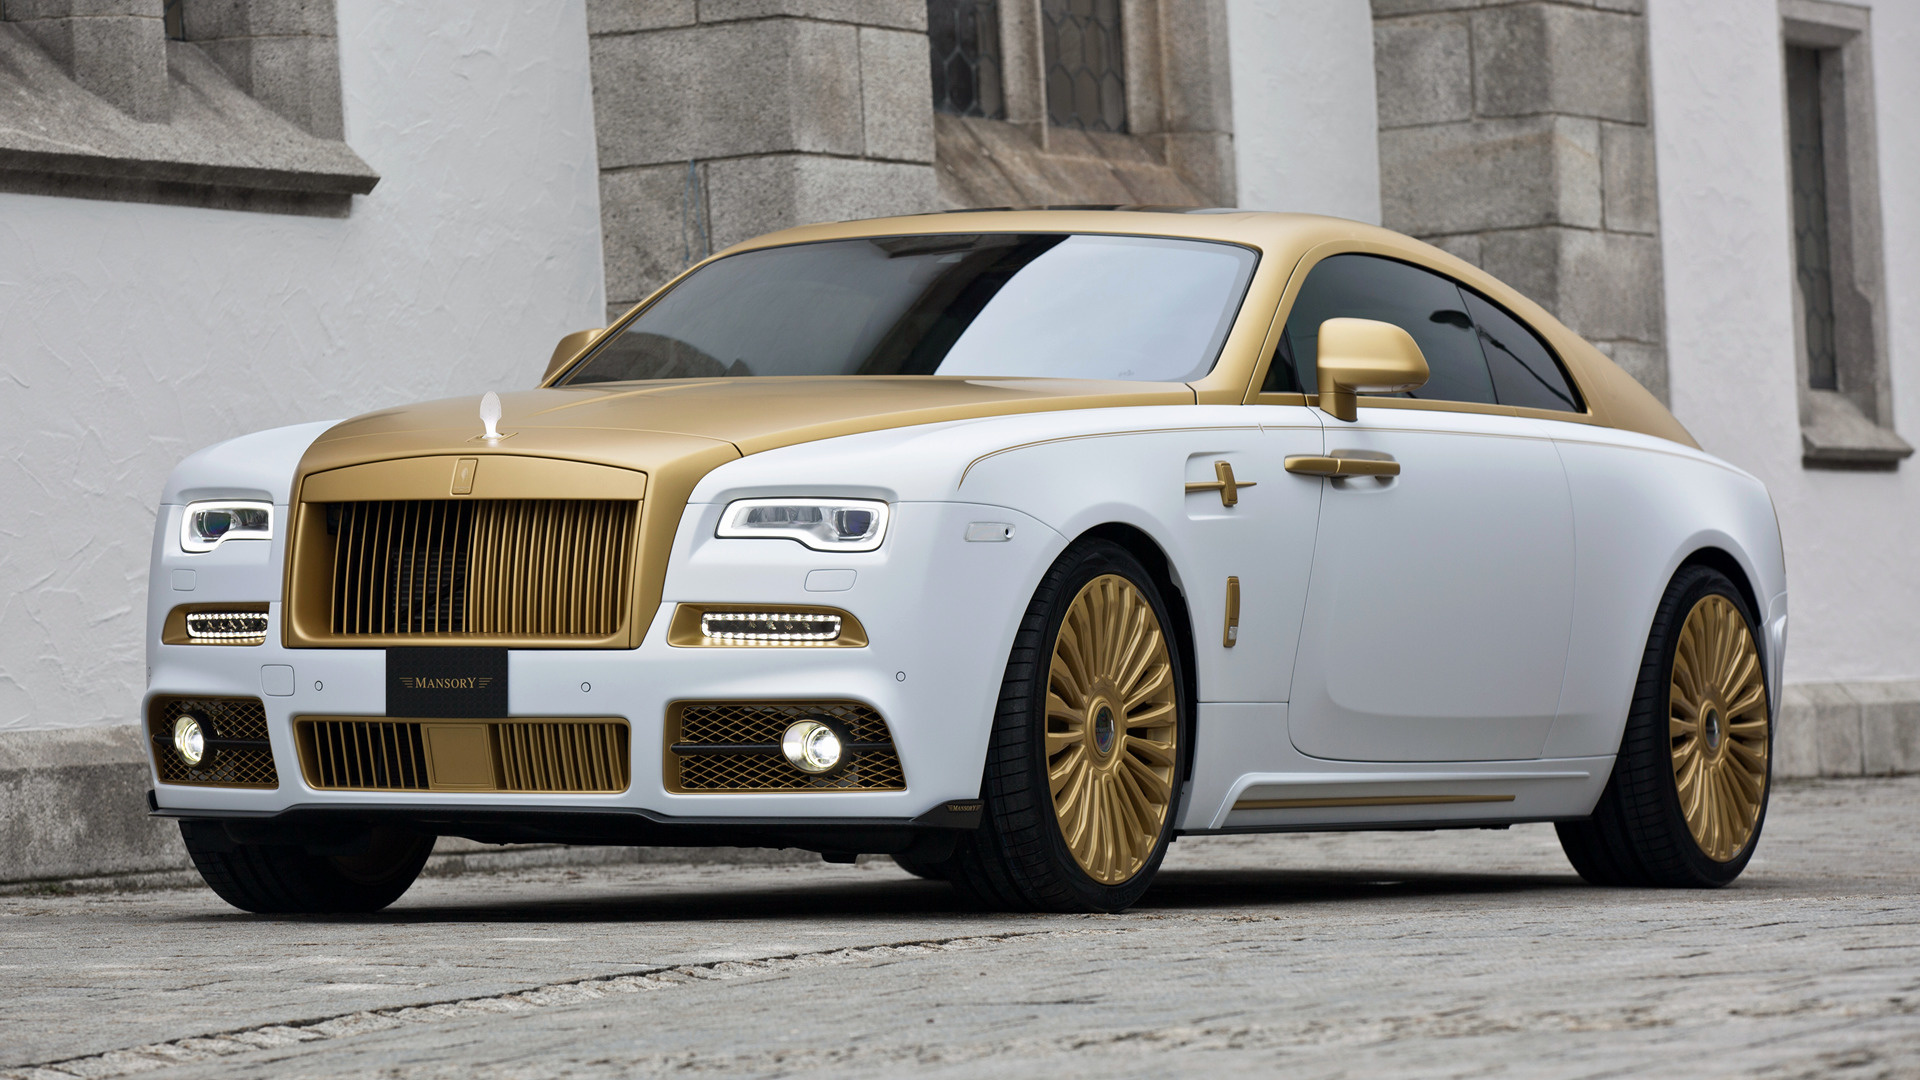 2016 Rolls Royce Wraith Palm Edition 999 By Mansory HD Wallpaper